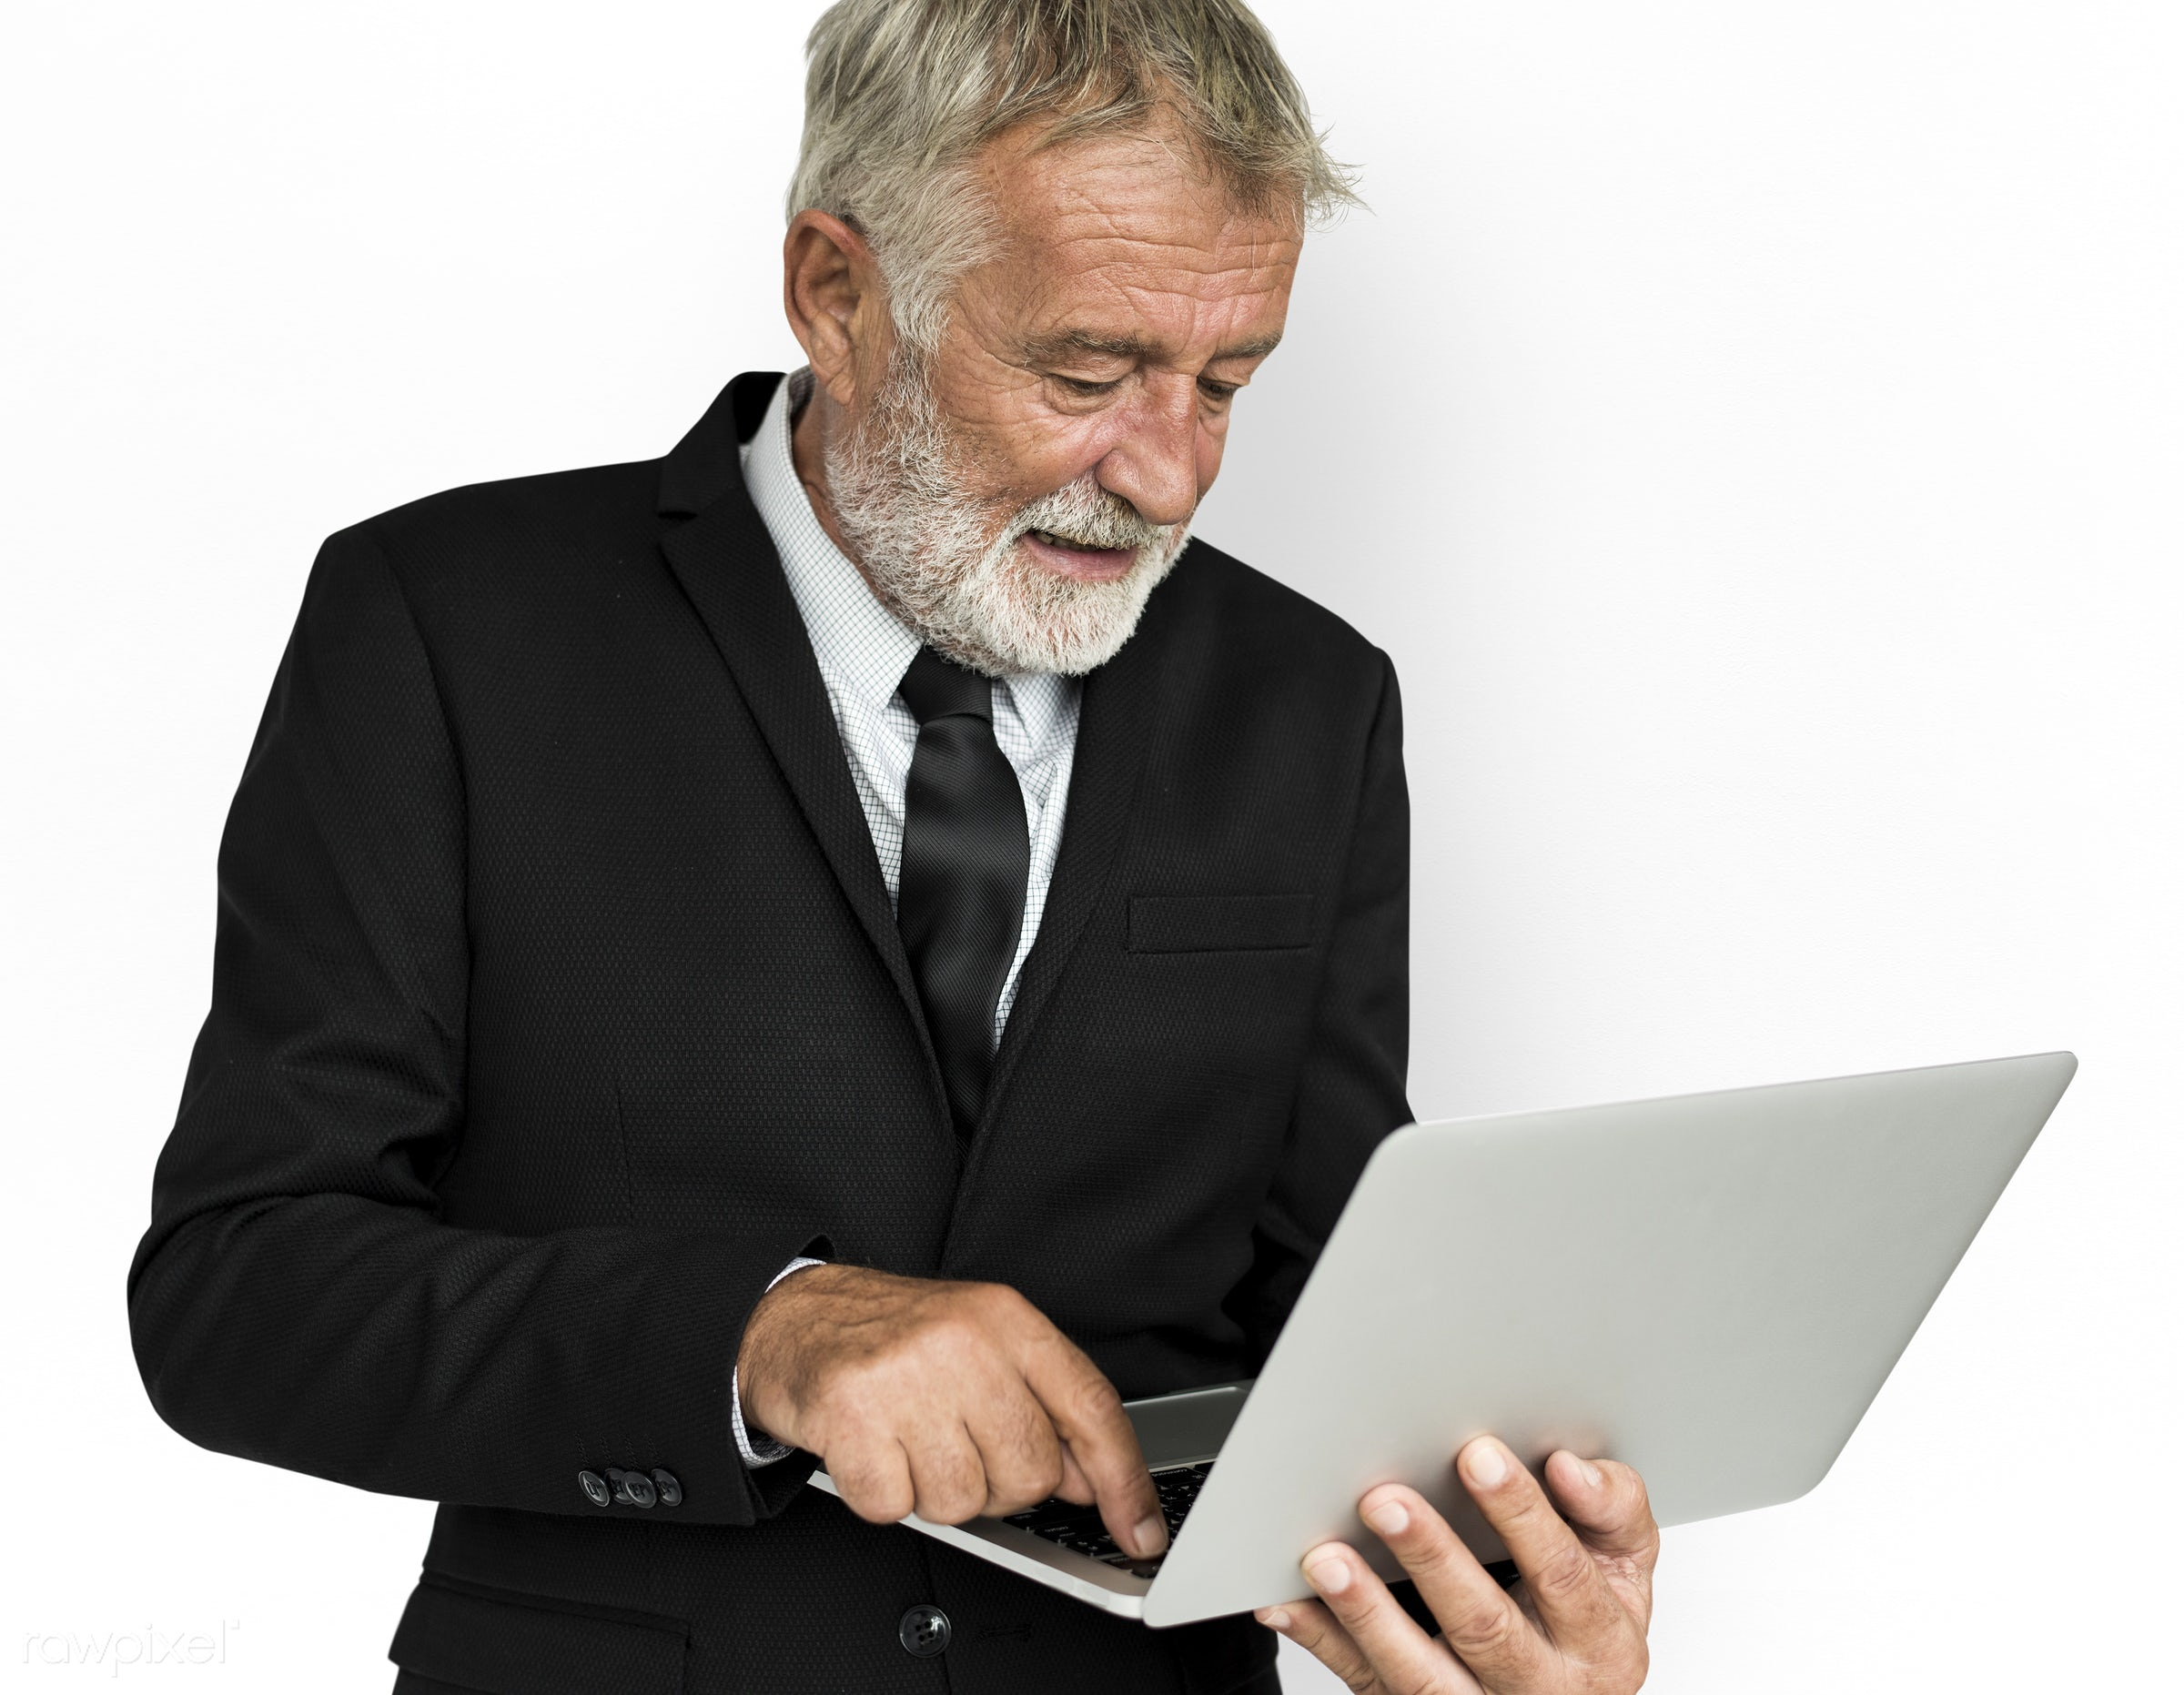 expression, studio, person, busy, people, business, caucasian, laptop, focused, working, serious, man, work, isolated,...